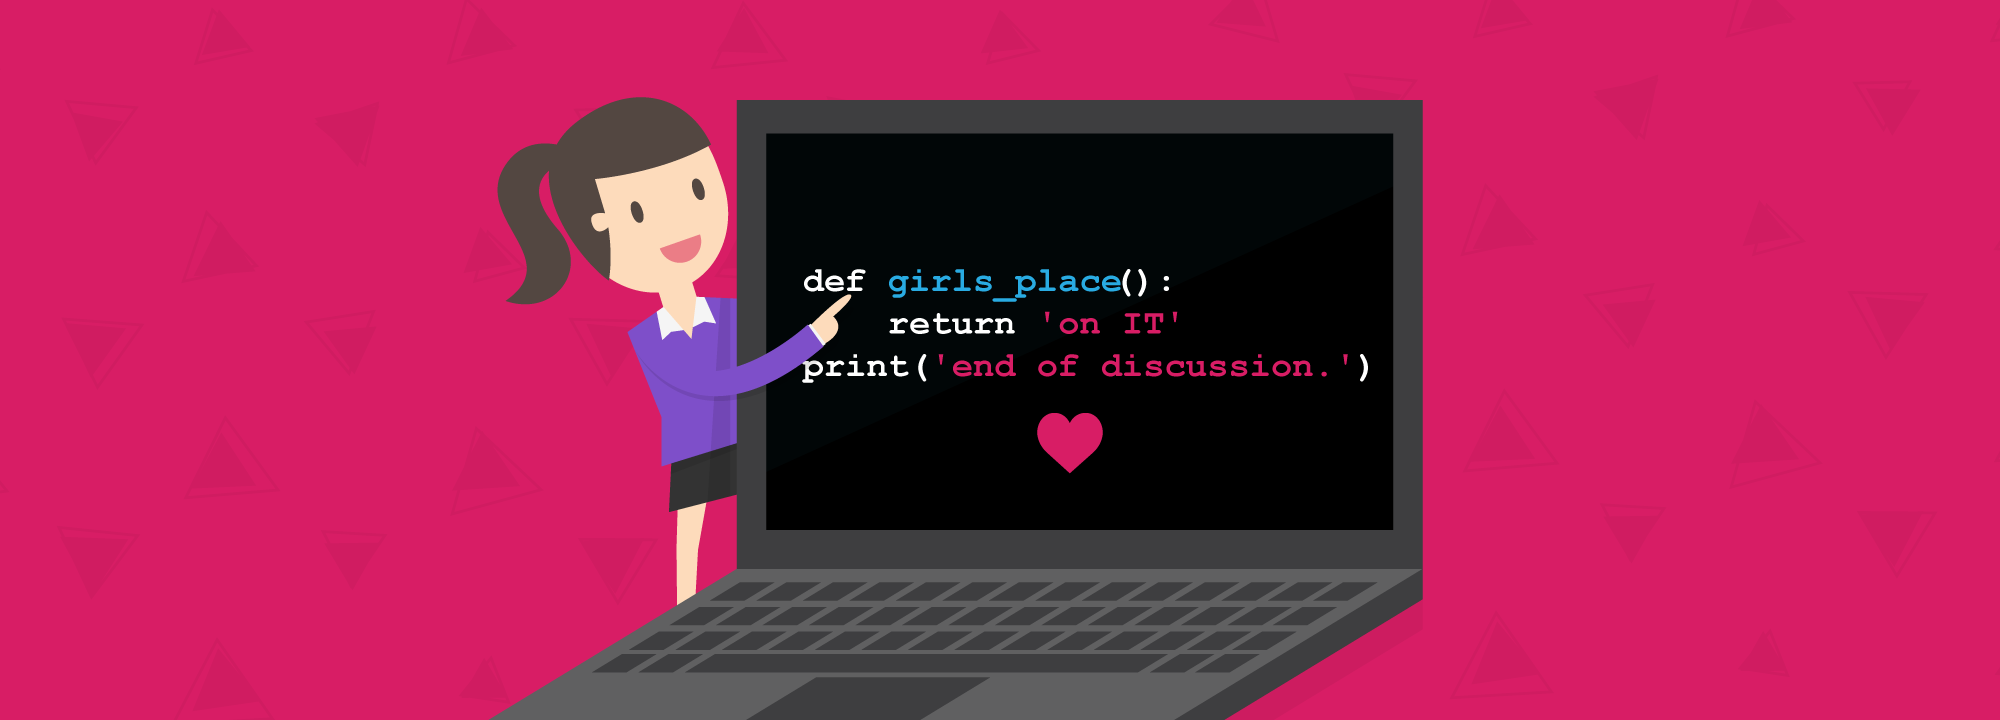 A girl who codes: Why that matters